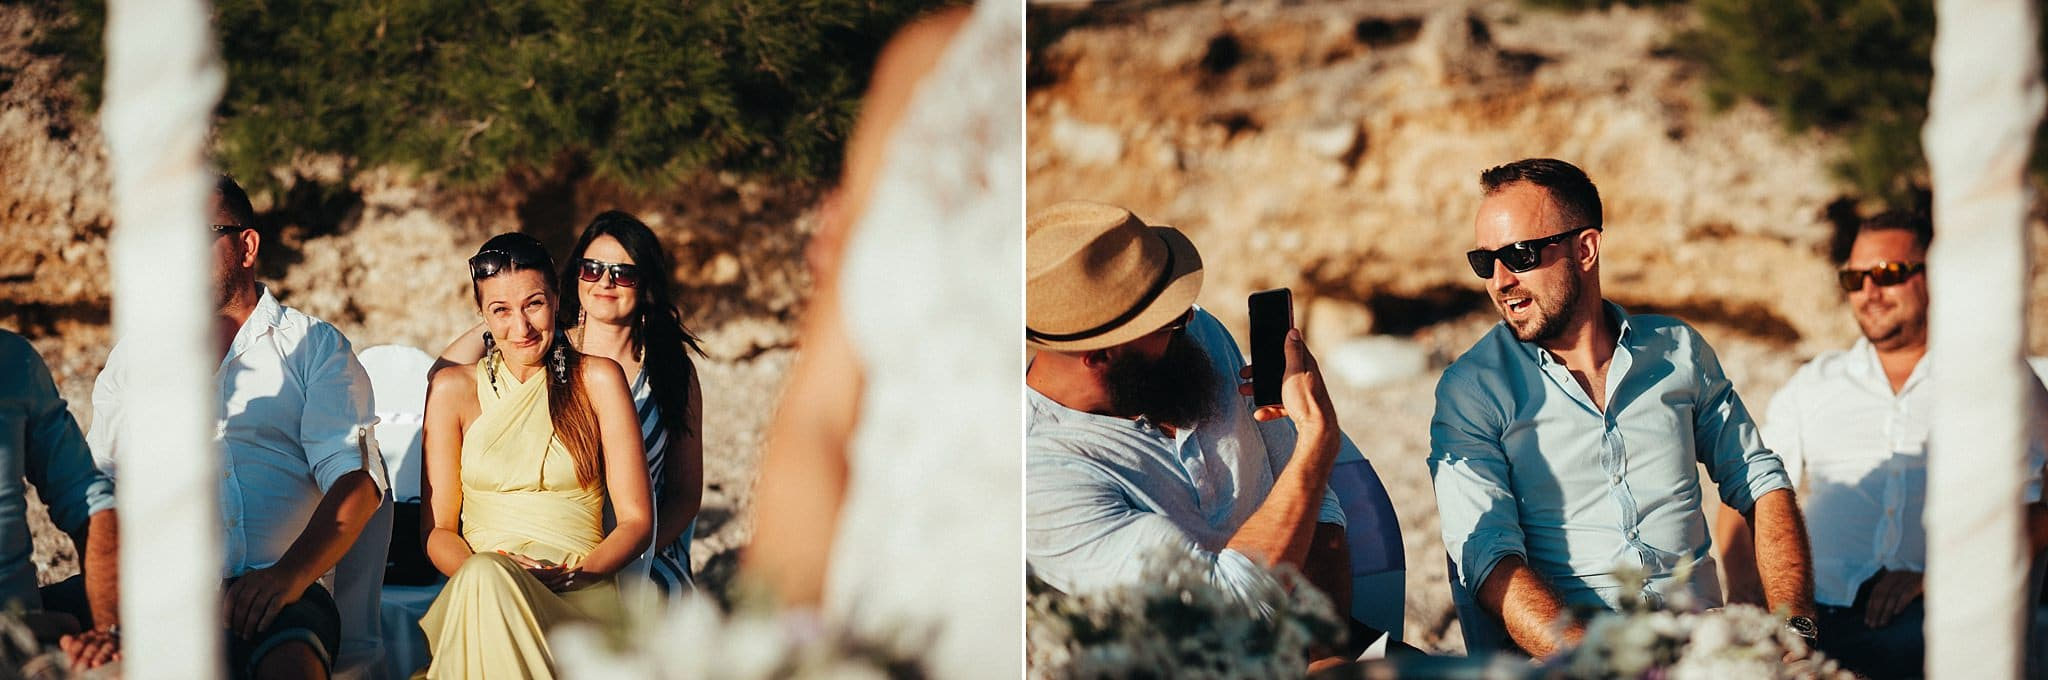 makarska wedding photographer croatia 019 - Dalmatia Wedding Photographer | Adrienn & Attila